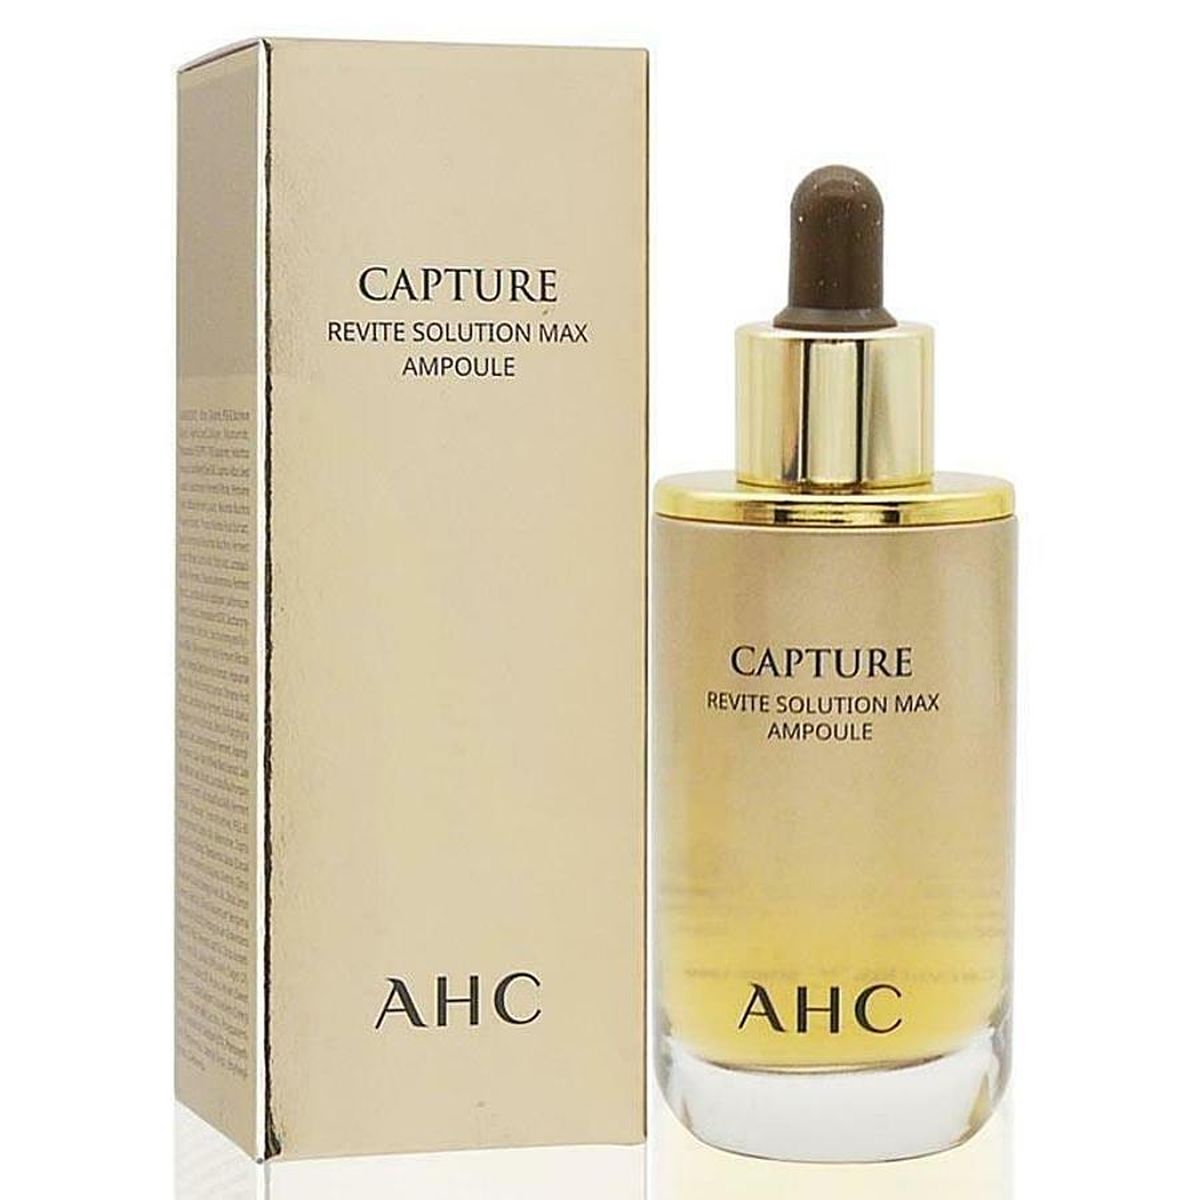 Восстанавливающая сыворотка для лица A.H.C Capture Revite Solution Max Ampoule - 50 мл